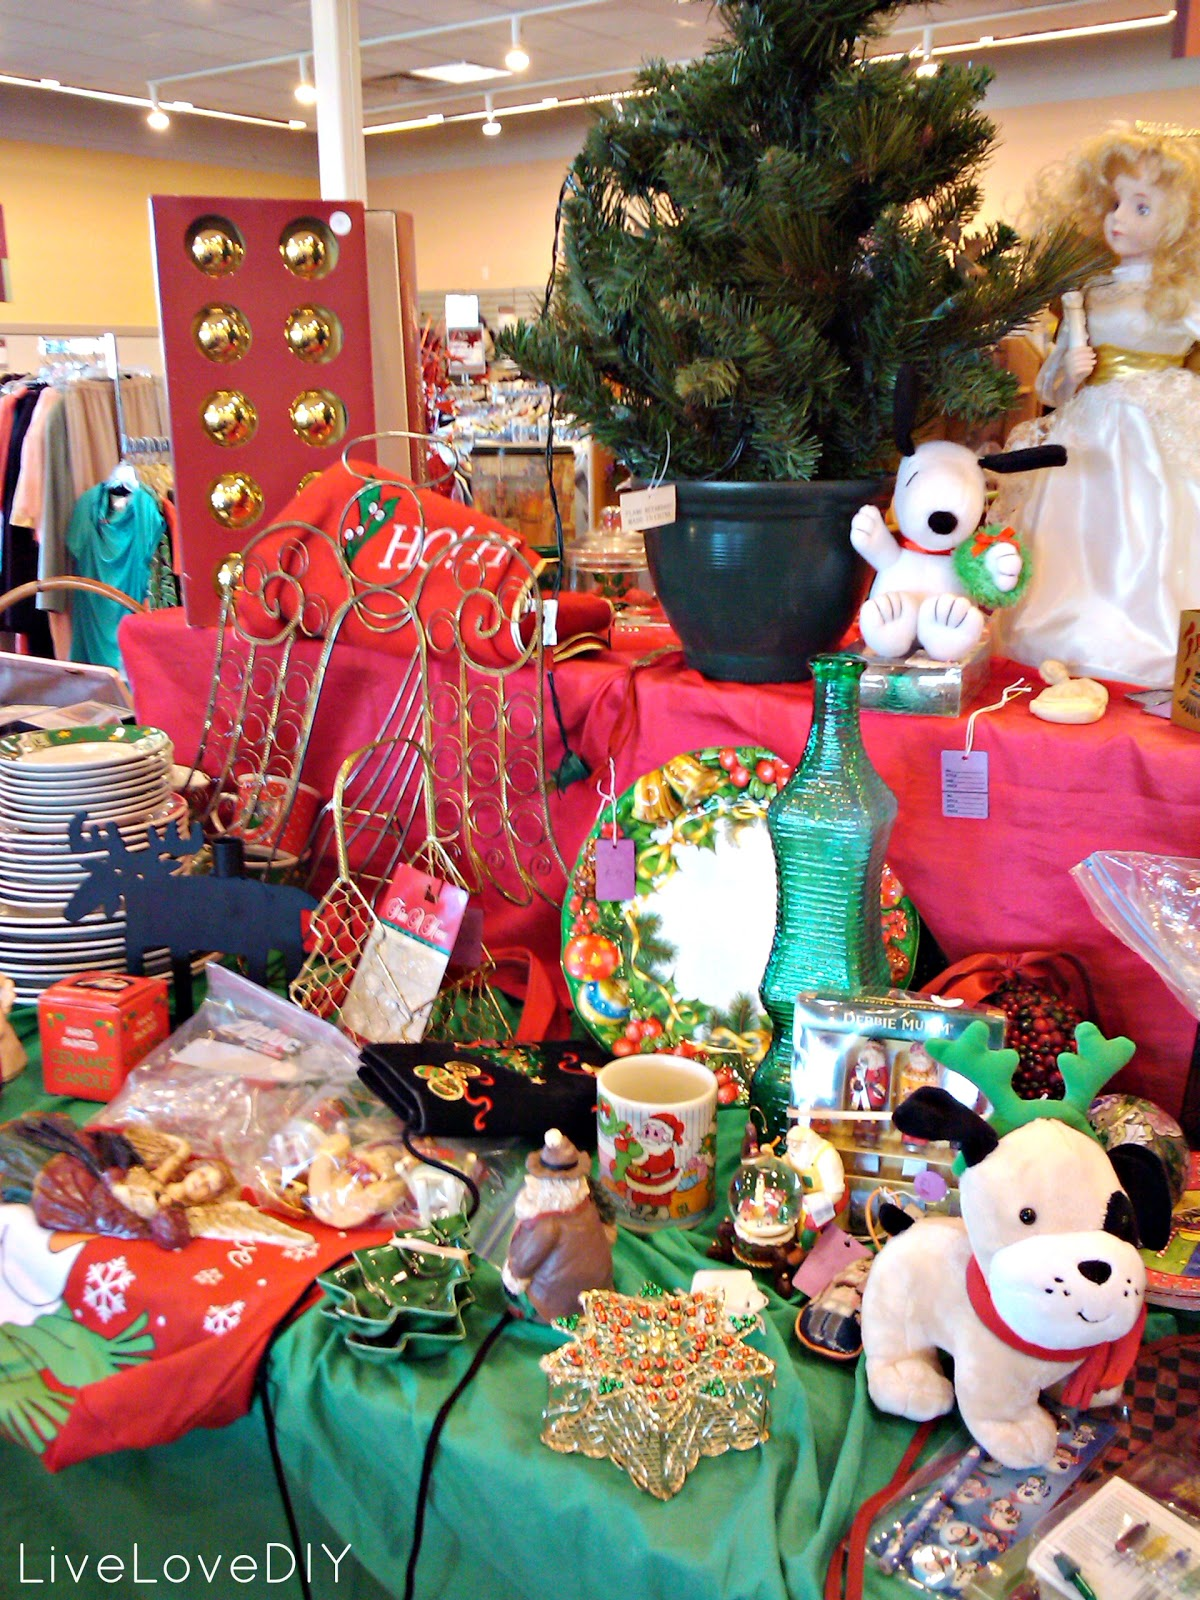 livelovediy how to shop at a thrift store for christmas decor - Christmas Decoration Stores Near Me